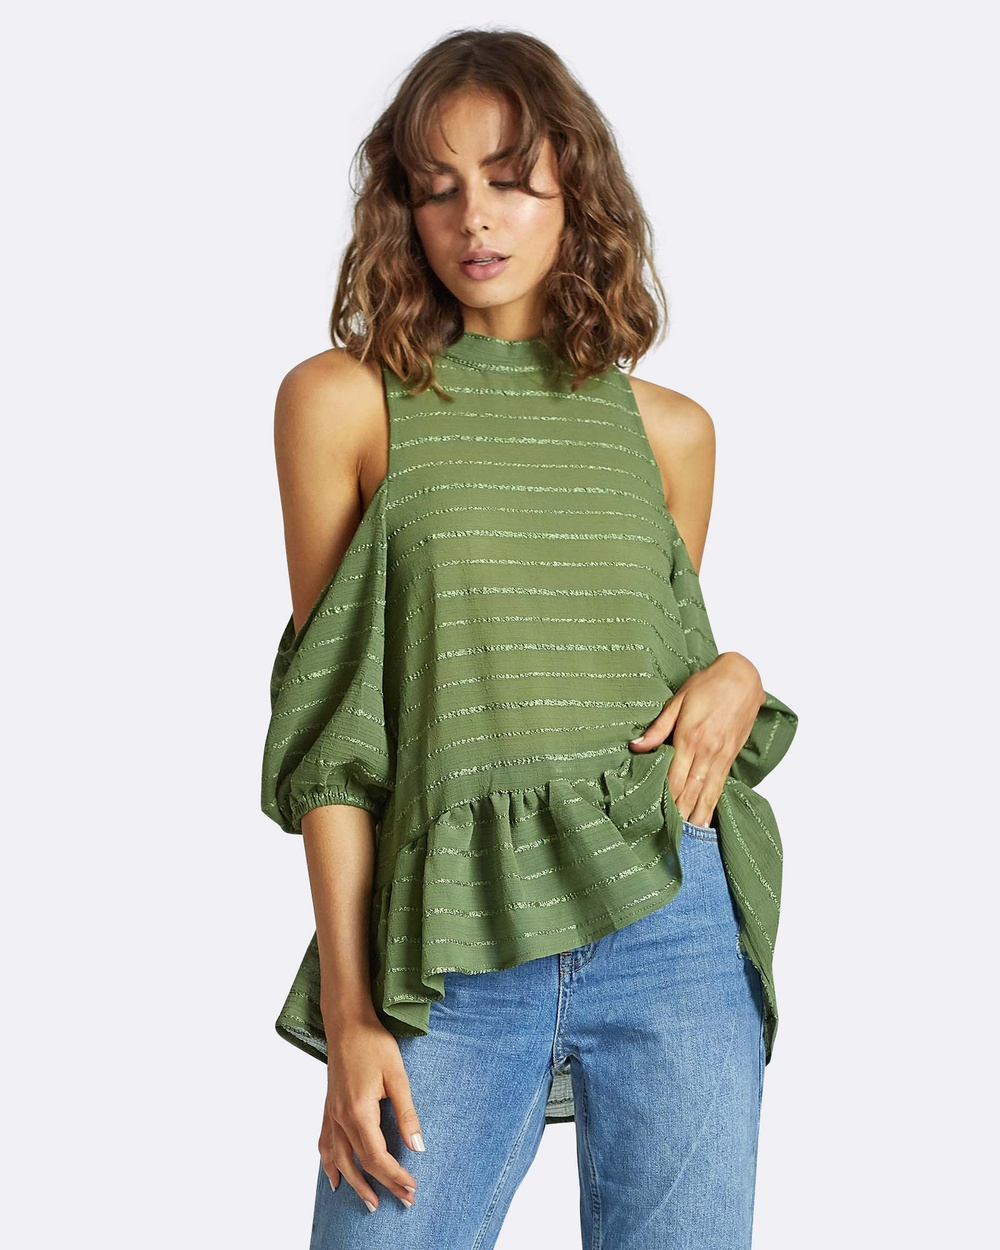 Three of Something Friends and Lovers Top Tops MOSS KHAKI Friends and Lovers Top